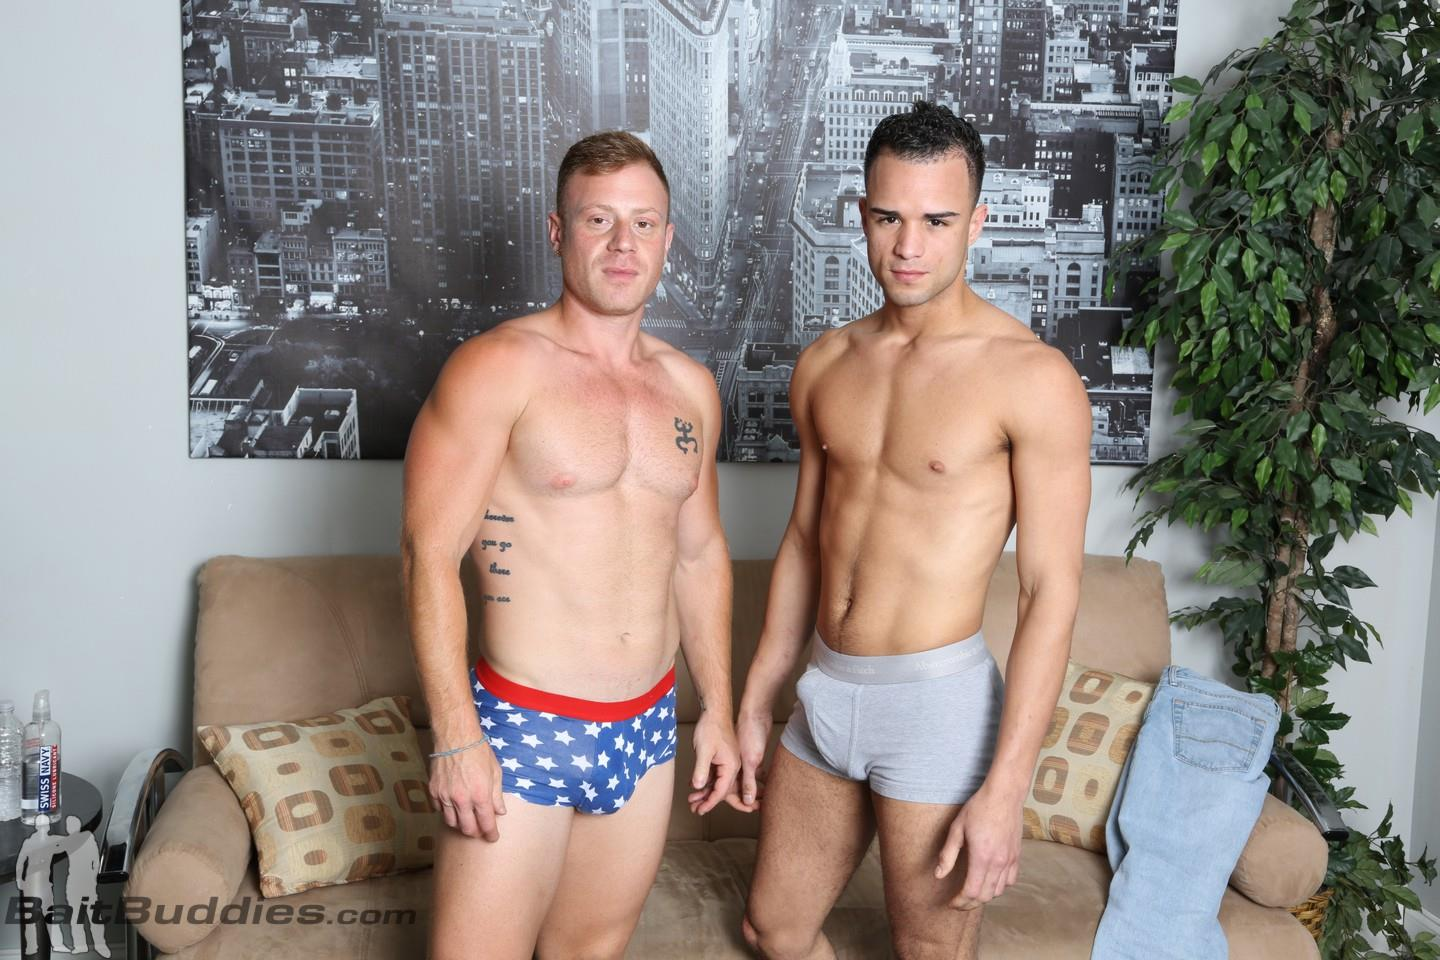 Bait-Buddies-Saxon-and-Javier-Cruz-Straight-Ginger-With-Thick-Cock-Amateur-Gay-Porn-03 Straight Beefy Ginger Fucks His First Man Ass For Cash